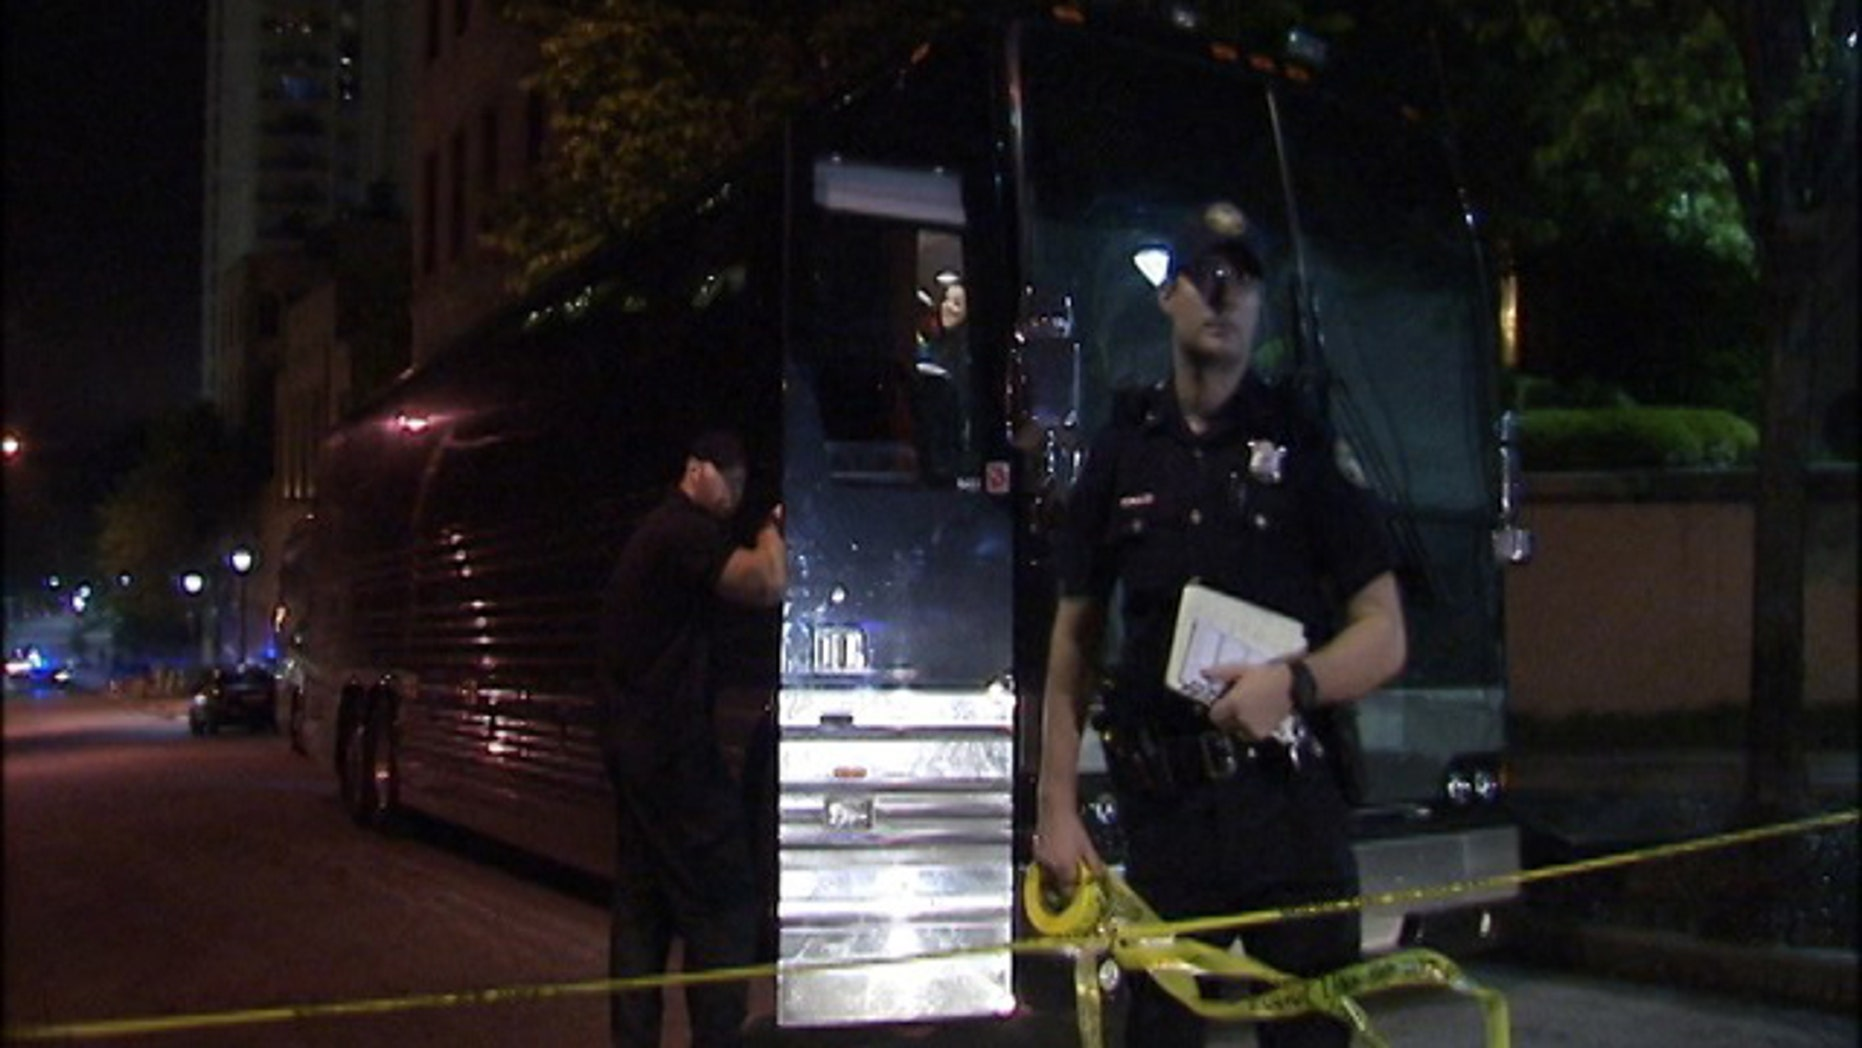 April 26, 2015: Atlanta police rope off one of two buses that was struck by gunfire early Sunday. Rapper Lil Wayne was unhurt after someone opened fire on his tour bus following a performance at an Atlanta night club. (MyFoxAtlanta.com)